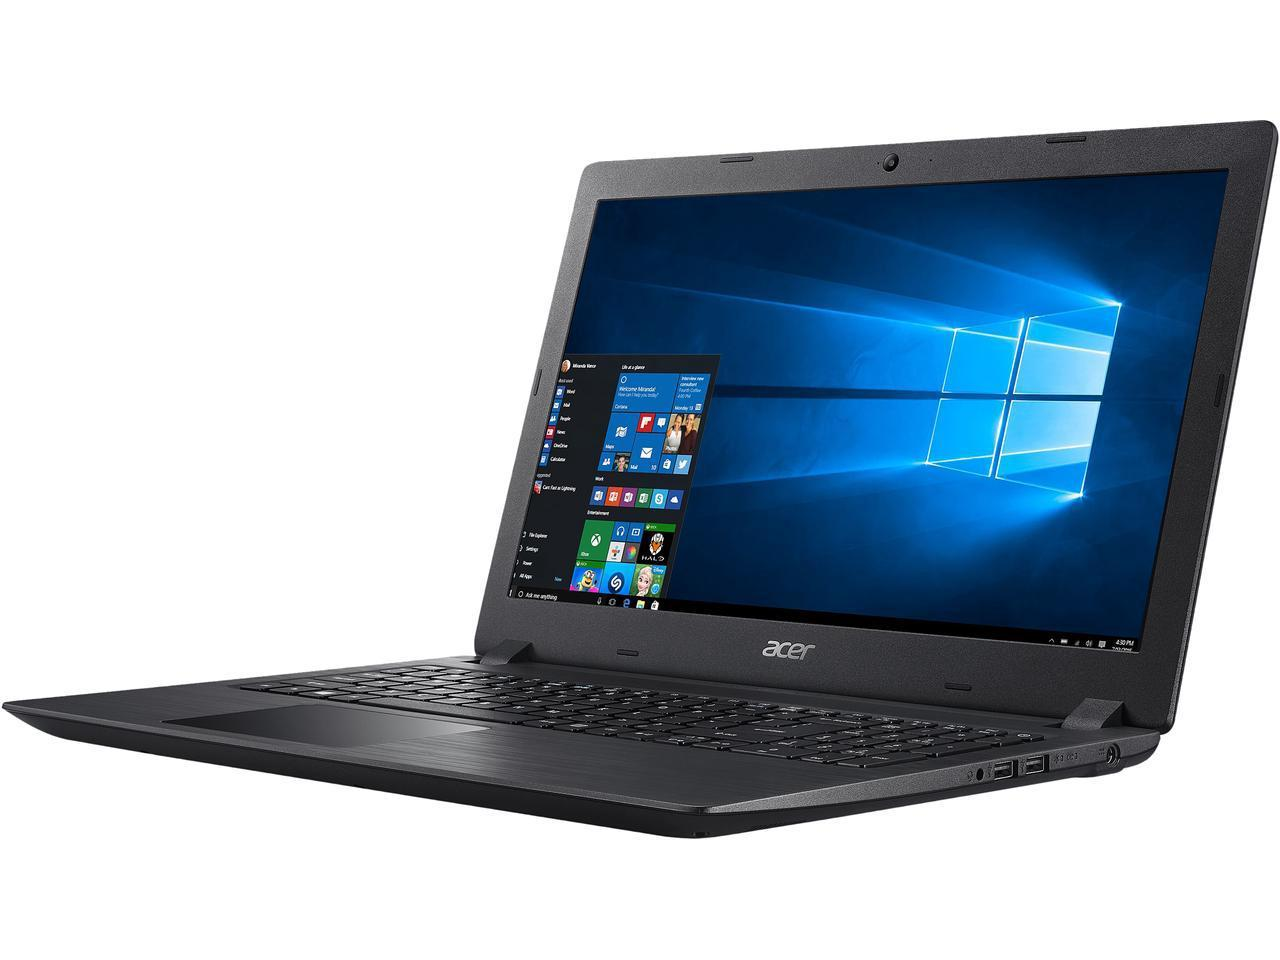 "Acer 15.6"" Laptop Intel Celeron 2.40GHz 4GB Ram 1TB HDD Windows 10 1"